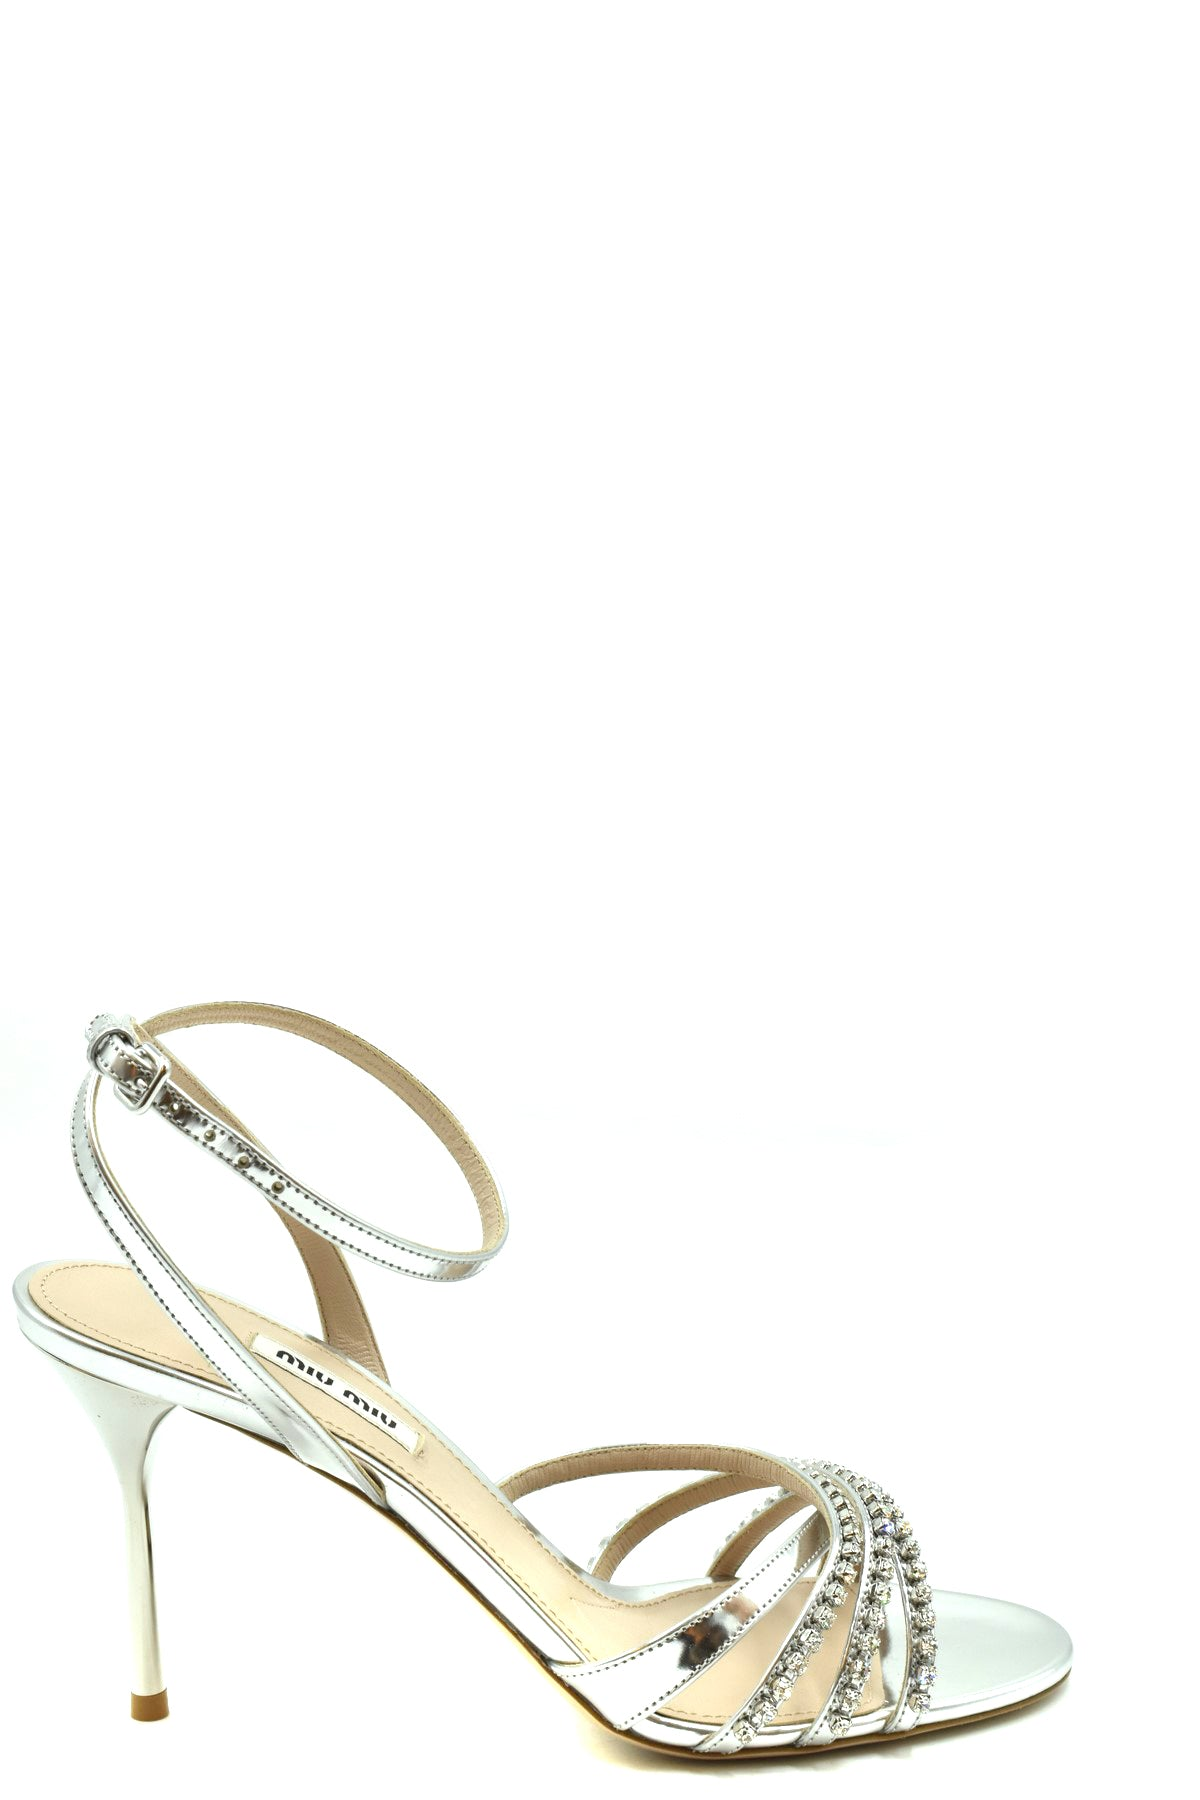 Shoes Miu Miu-Women's Fashion - Women's Shoes - Women's Sandals-35.5-Product Details Terms: New With LabelMain Color: SilverType Of Accessory: ShoesSeason: Spring / SummerMade In: ItalyGender: WomanHeel'S Height: 9 Cm Size: EuComposition: Leather 100%Year: 2020Manufacturer Part Number: 5X994C-Keyomi-Sook